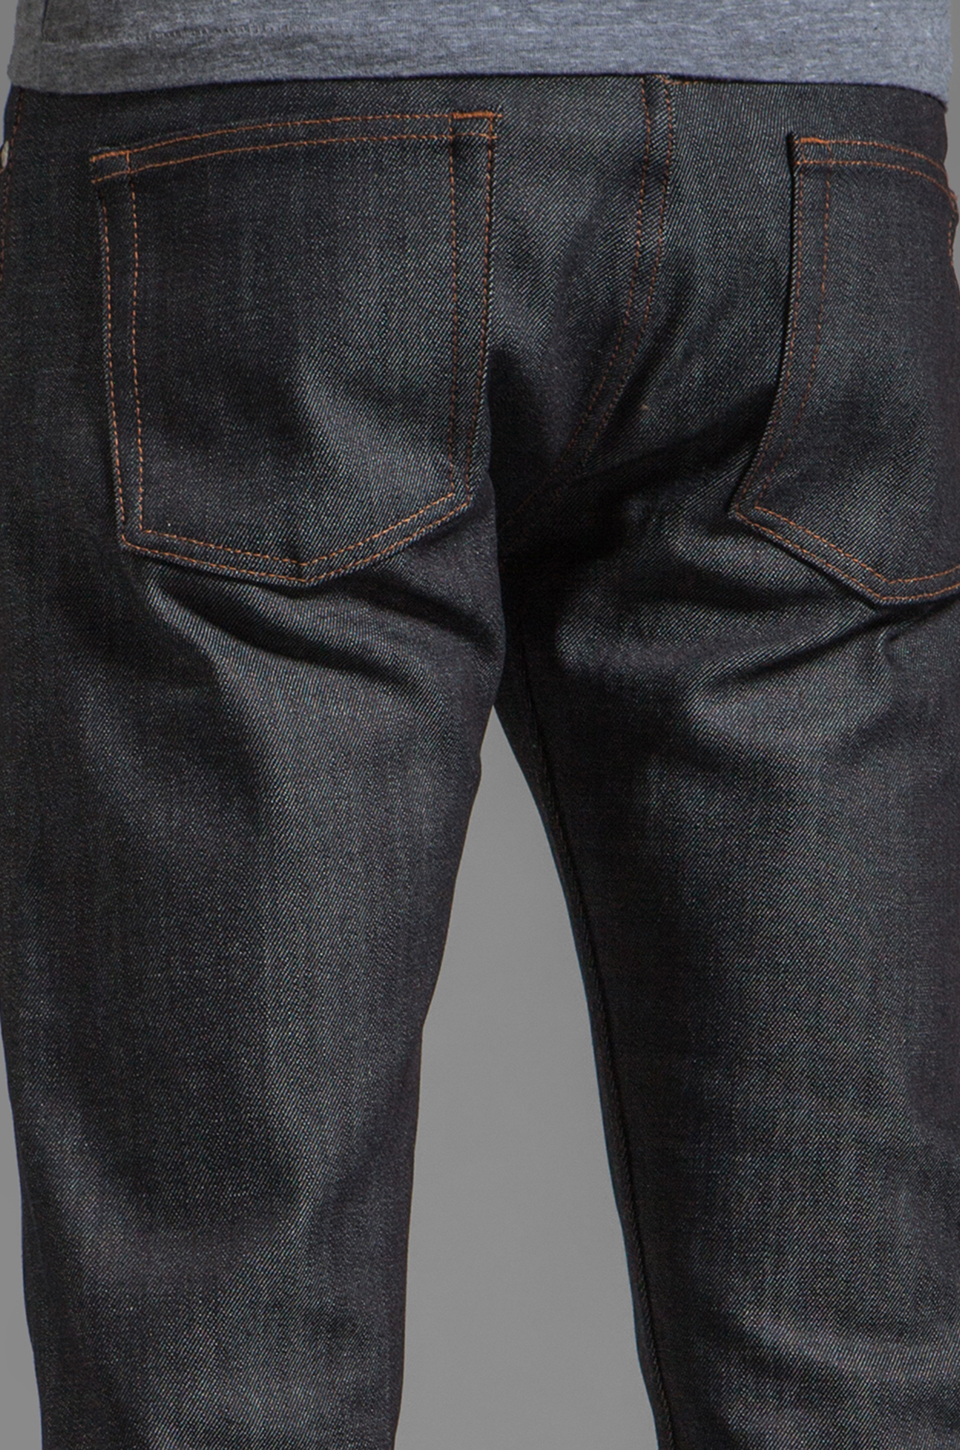 Naked & Famous Denim Weird Guy 12.5 oz in Stretch Selvedge